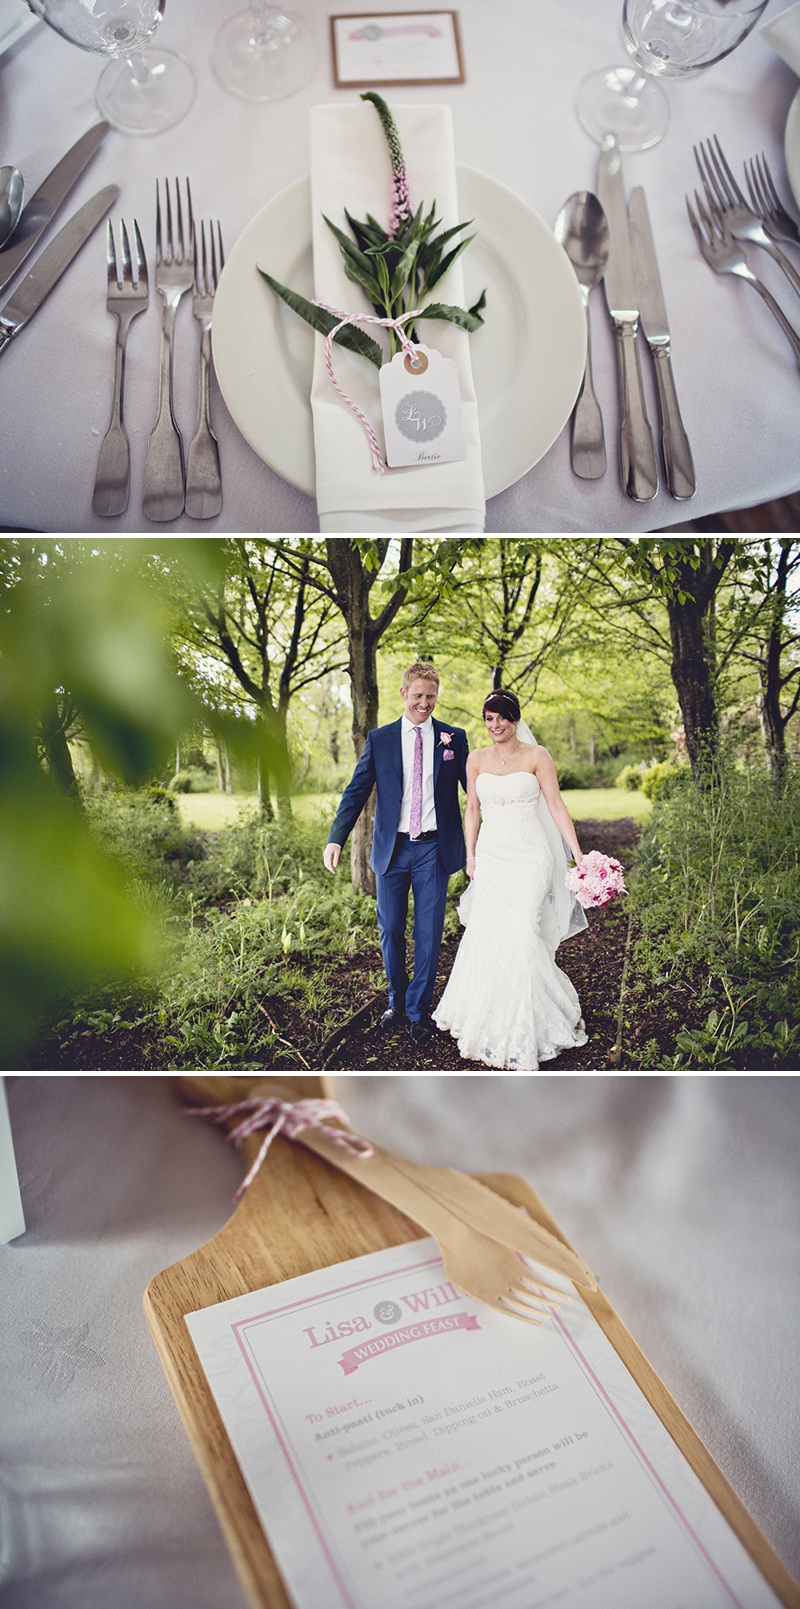 A pretty wedding at Cripps Barn by Anna Clarke photography with a lace pronovias dress_0313